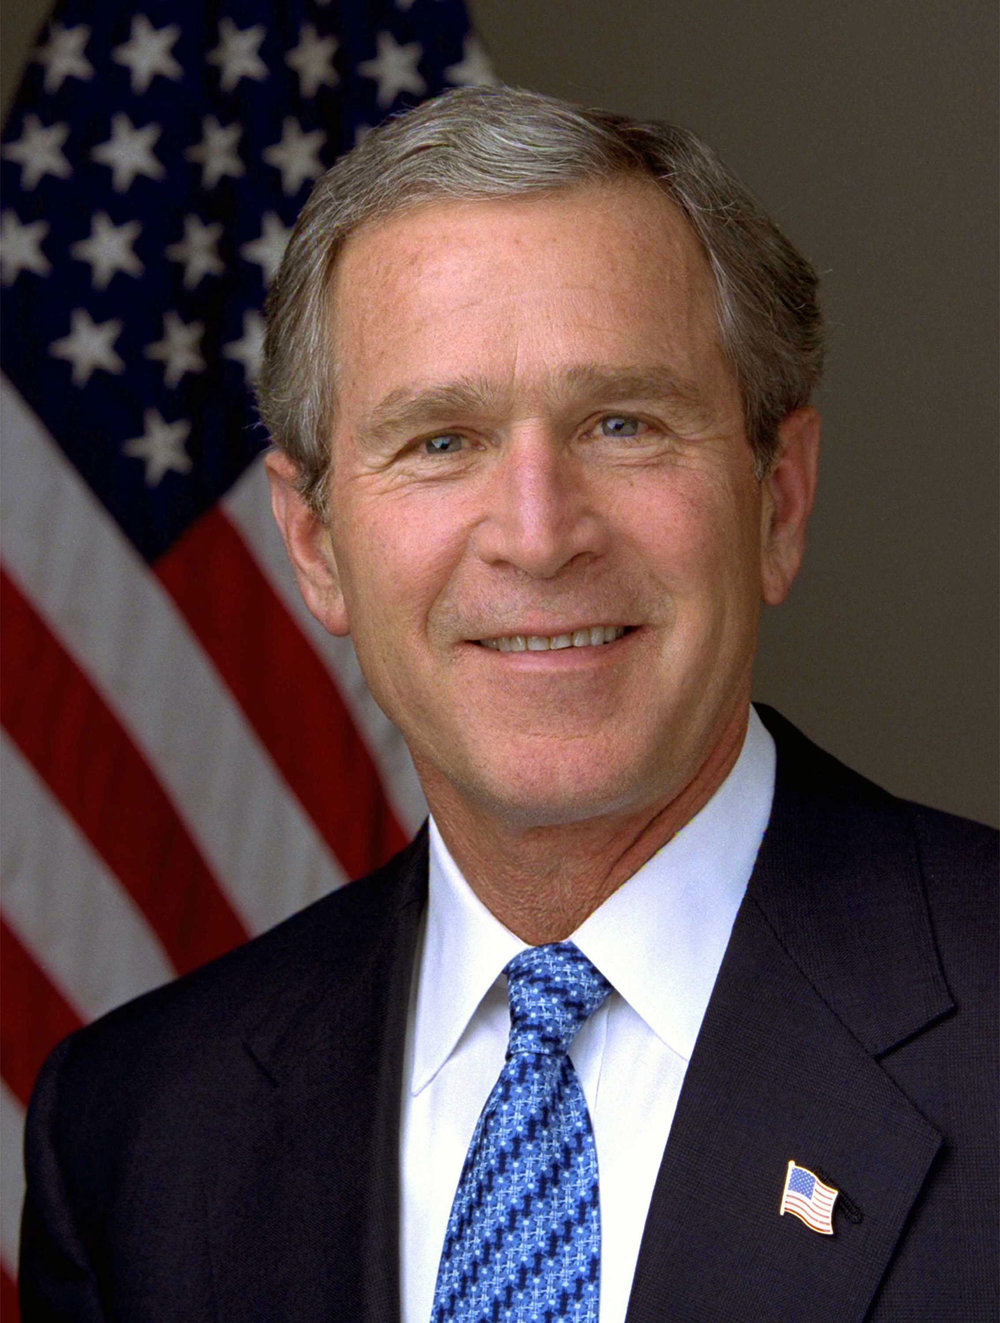 visit https://www.georgewbush.com/